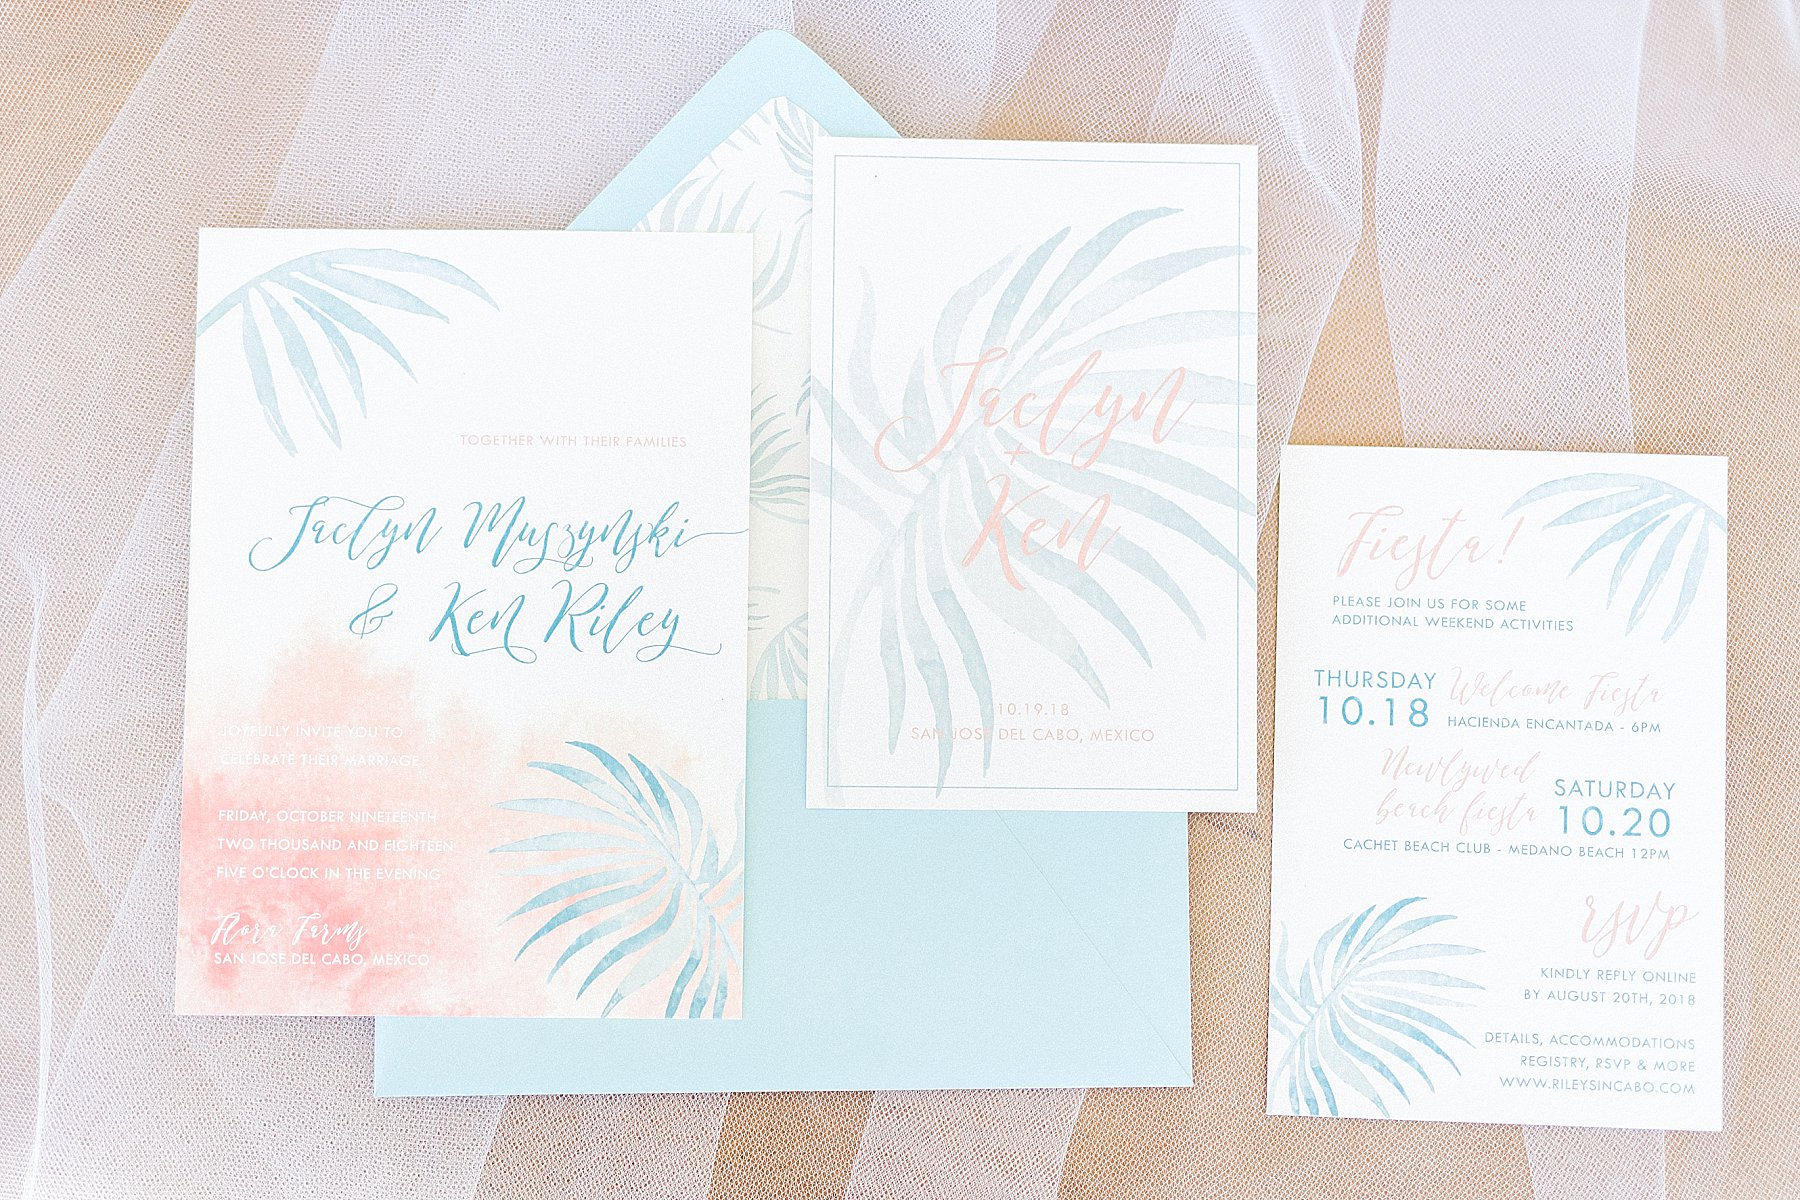 Wedding invitation for Wedding in Cabo San Lucas Mexico. The wedding was at Flora Farms and the Wedding Planners are Cabo Wedding Services with Jesse Wolff